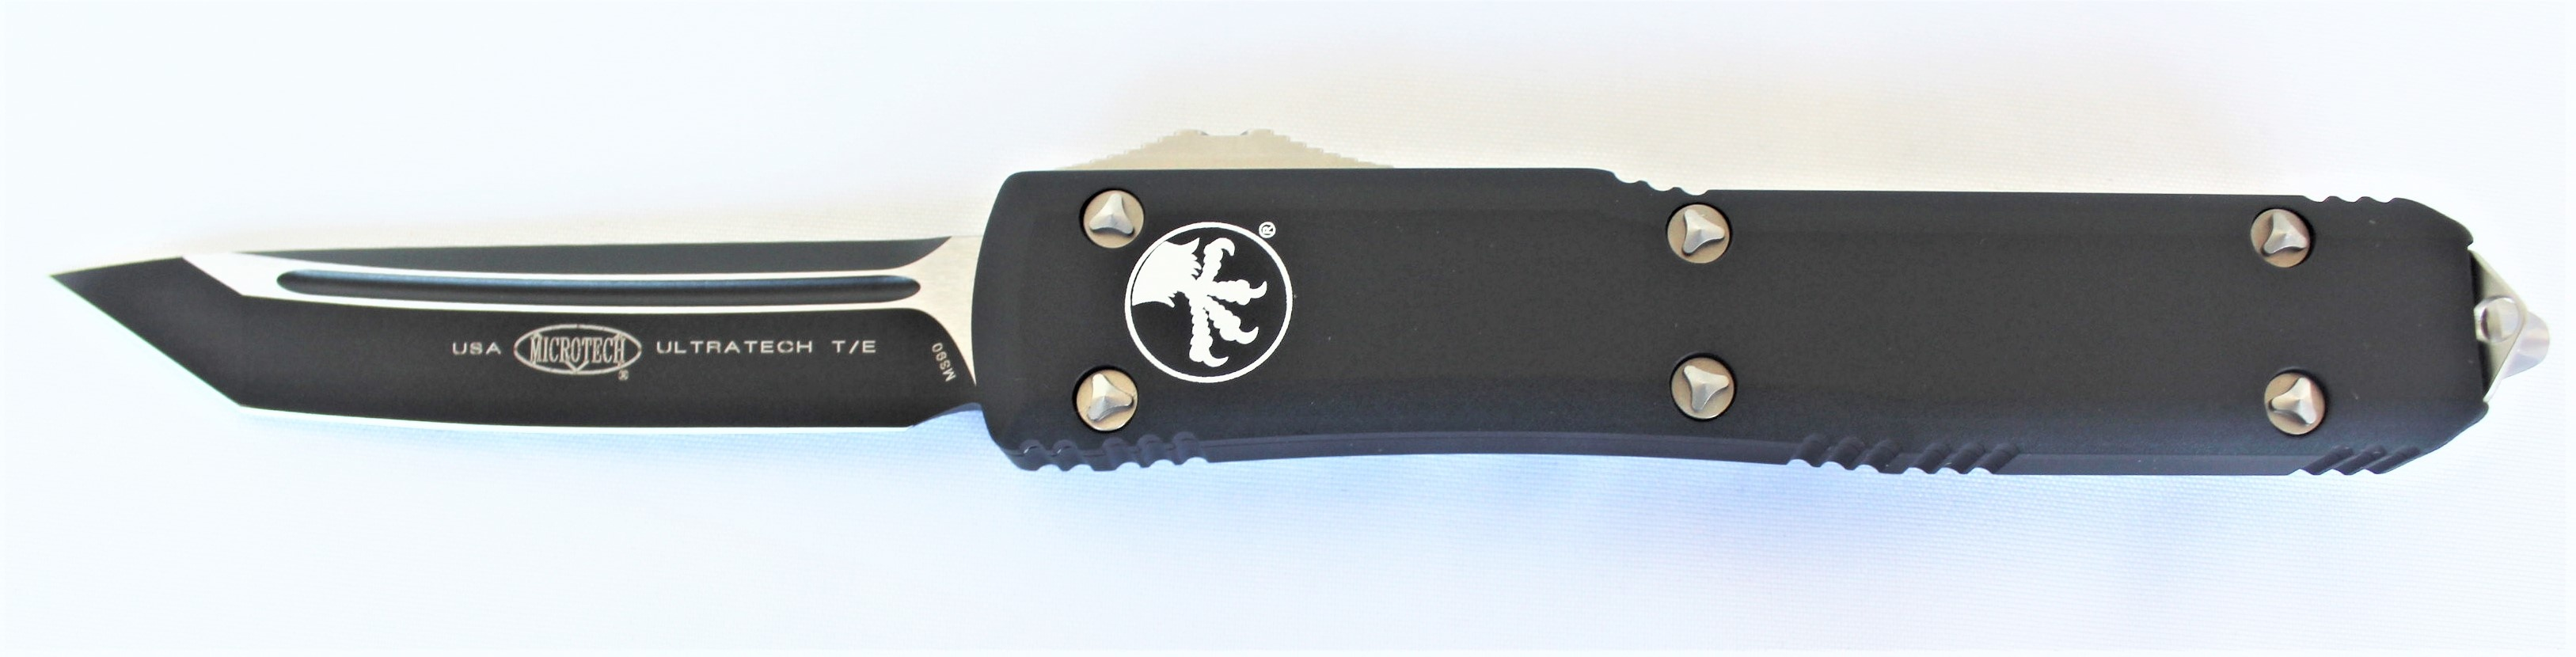 Microtech T/E Ultratech Black with Contoured Handles